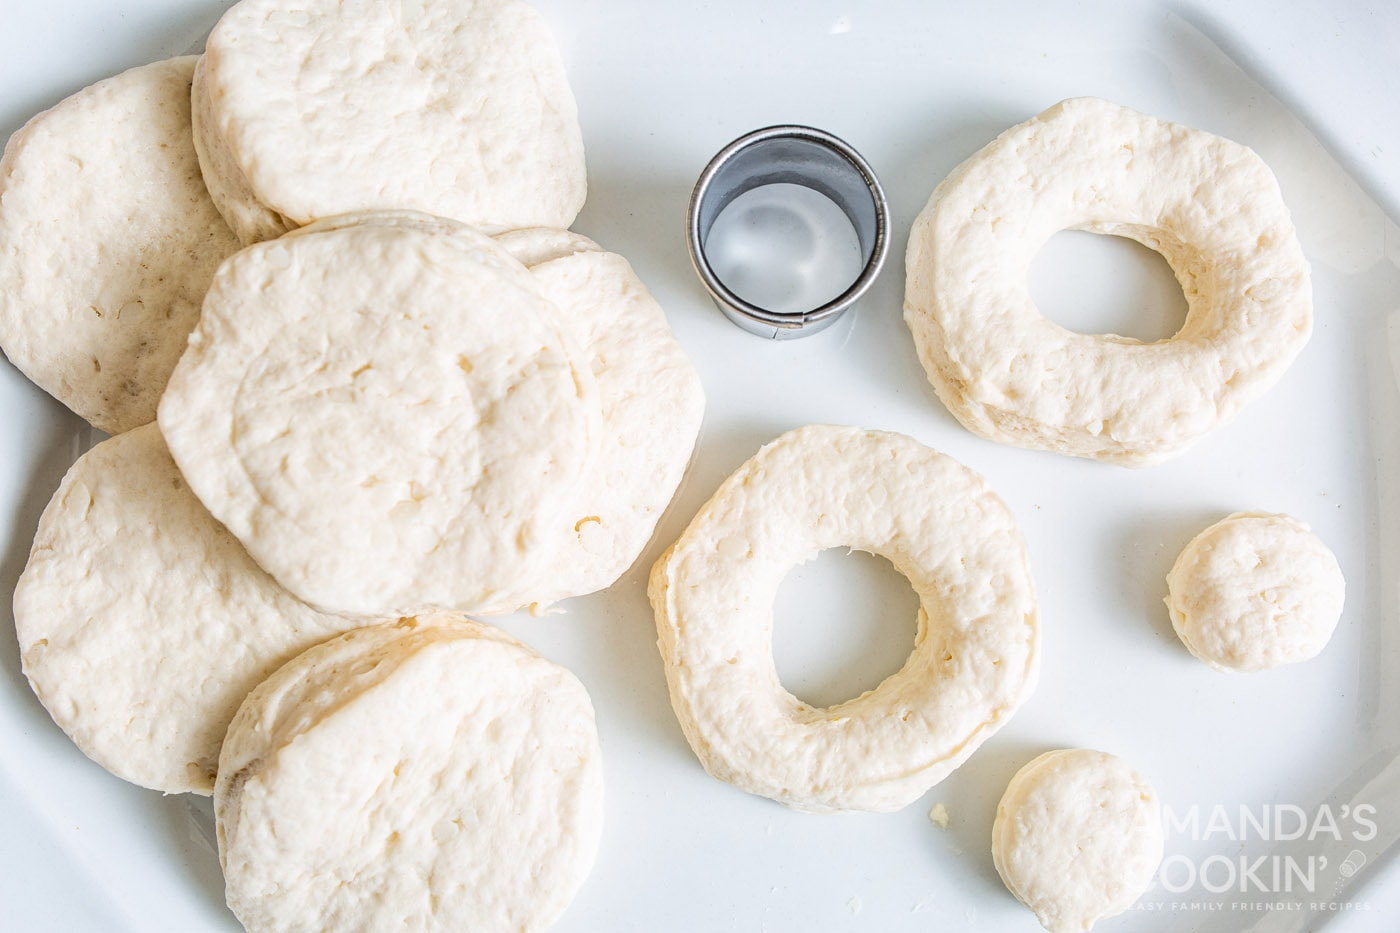 biscuits cut into donuts